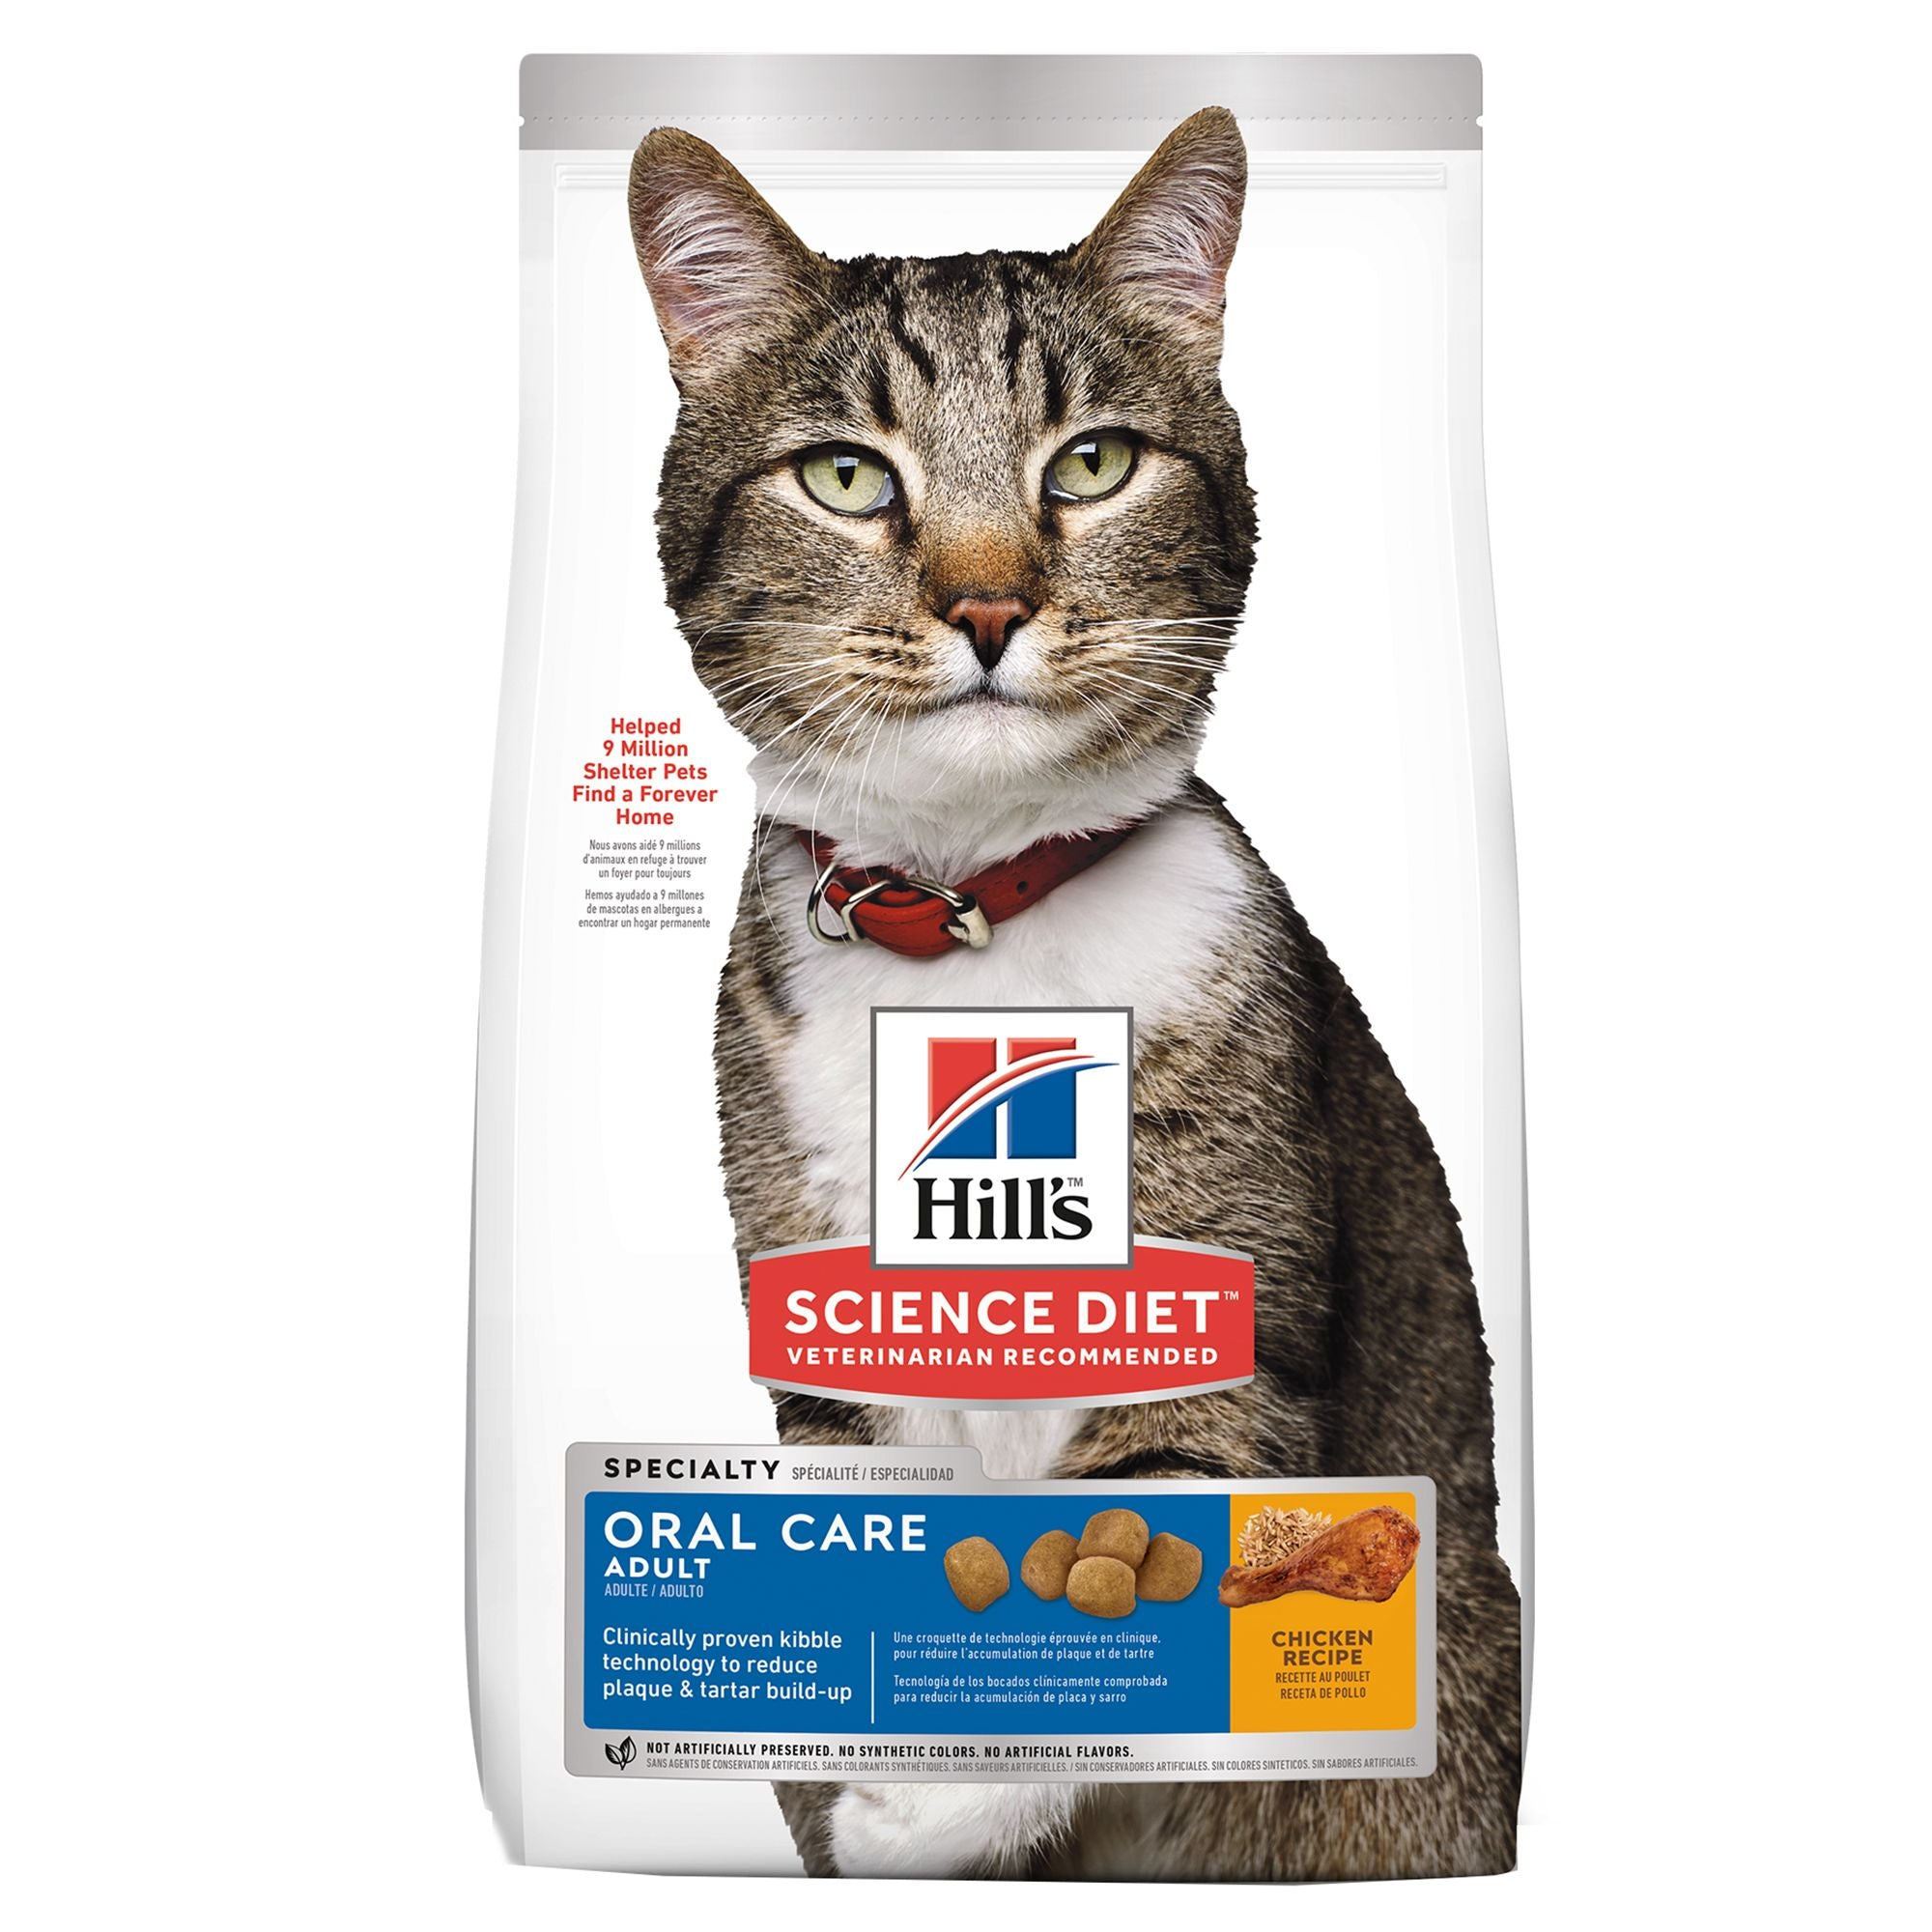 Hill's Science Diet Cat Adult Oral Care Food 7lbs